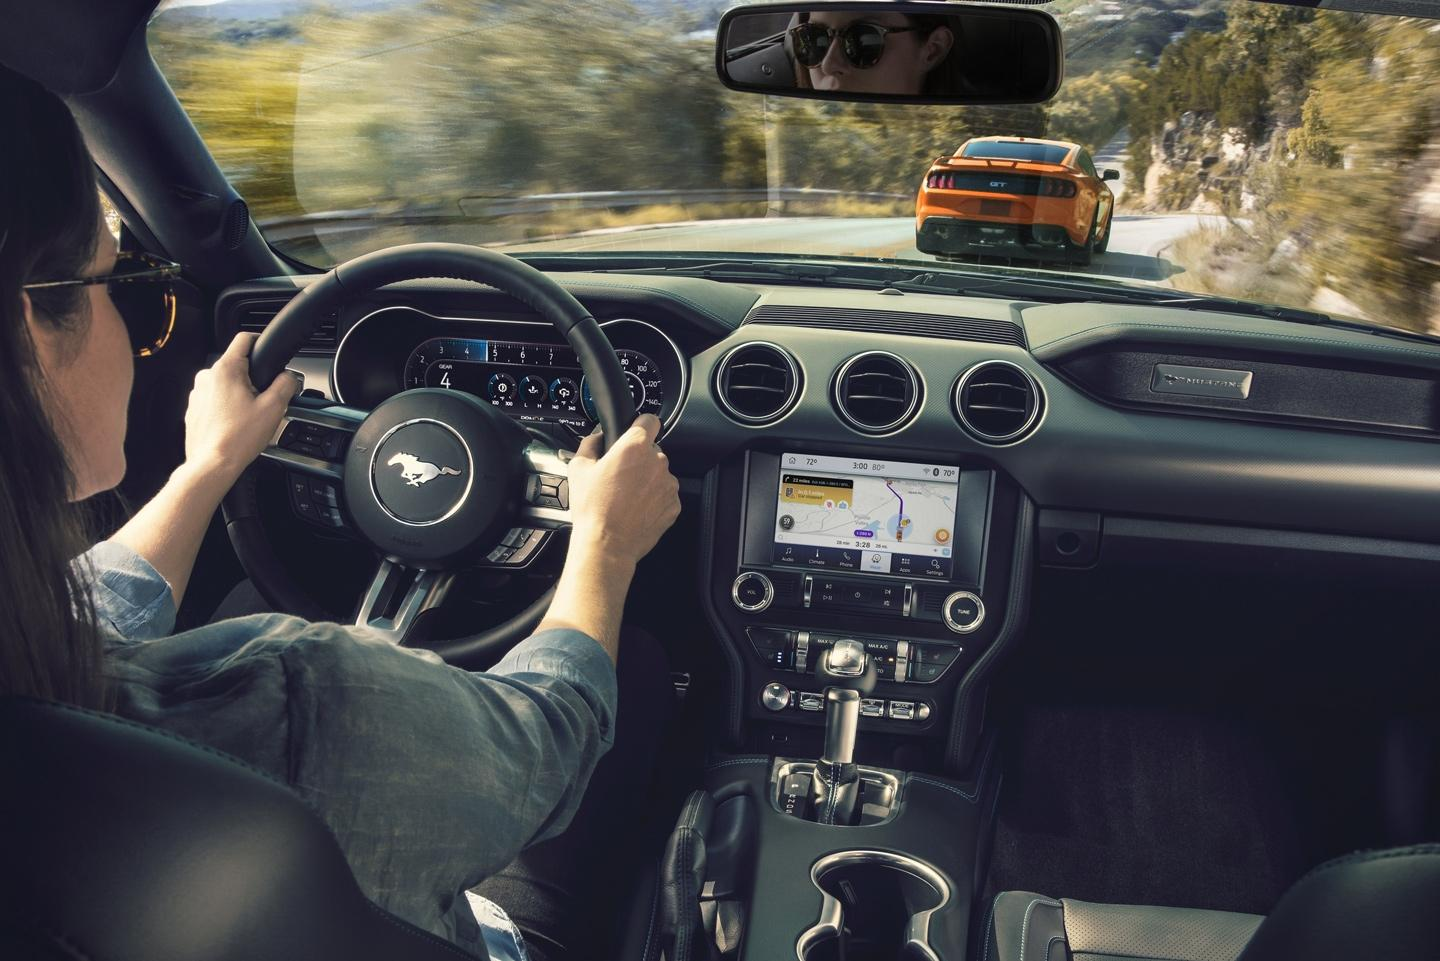 2020 Ford Mustang Technology | South Bay Ford